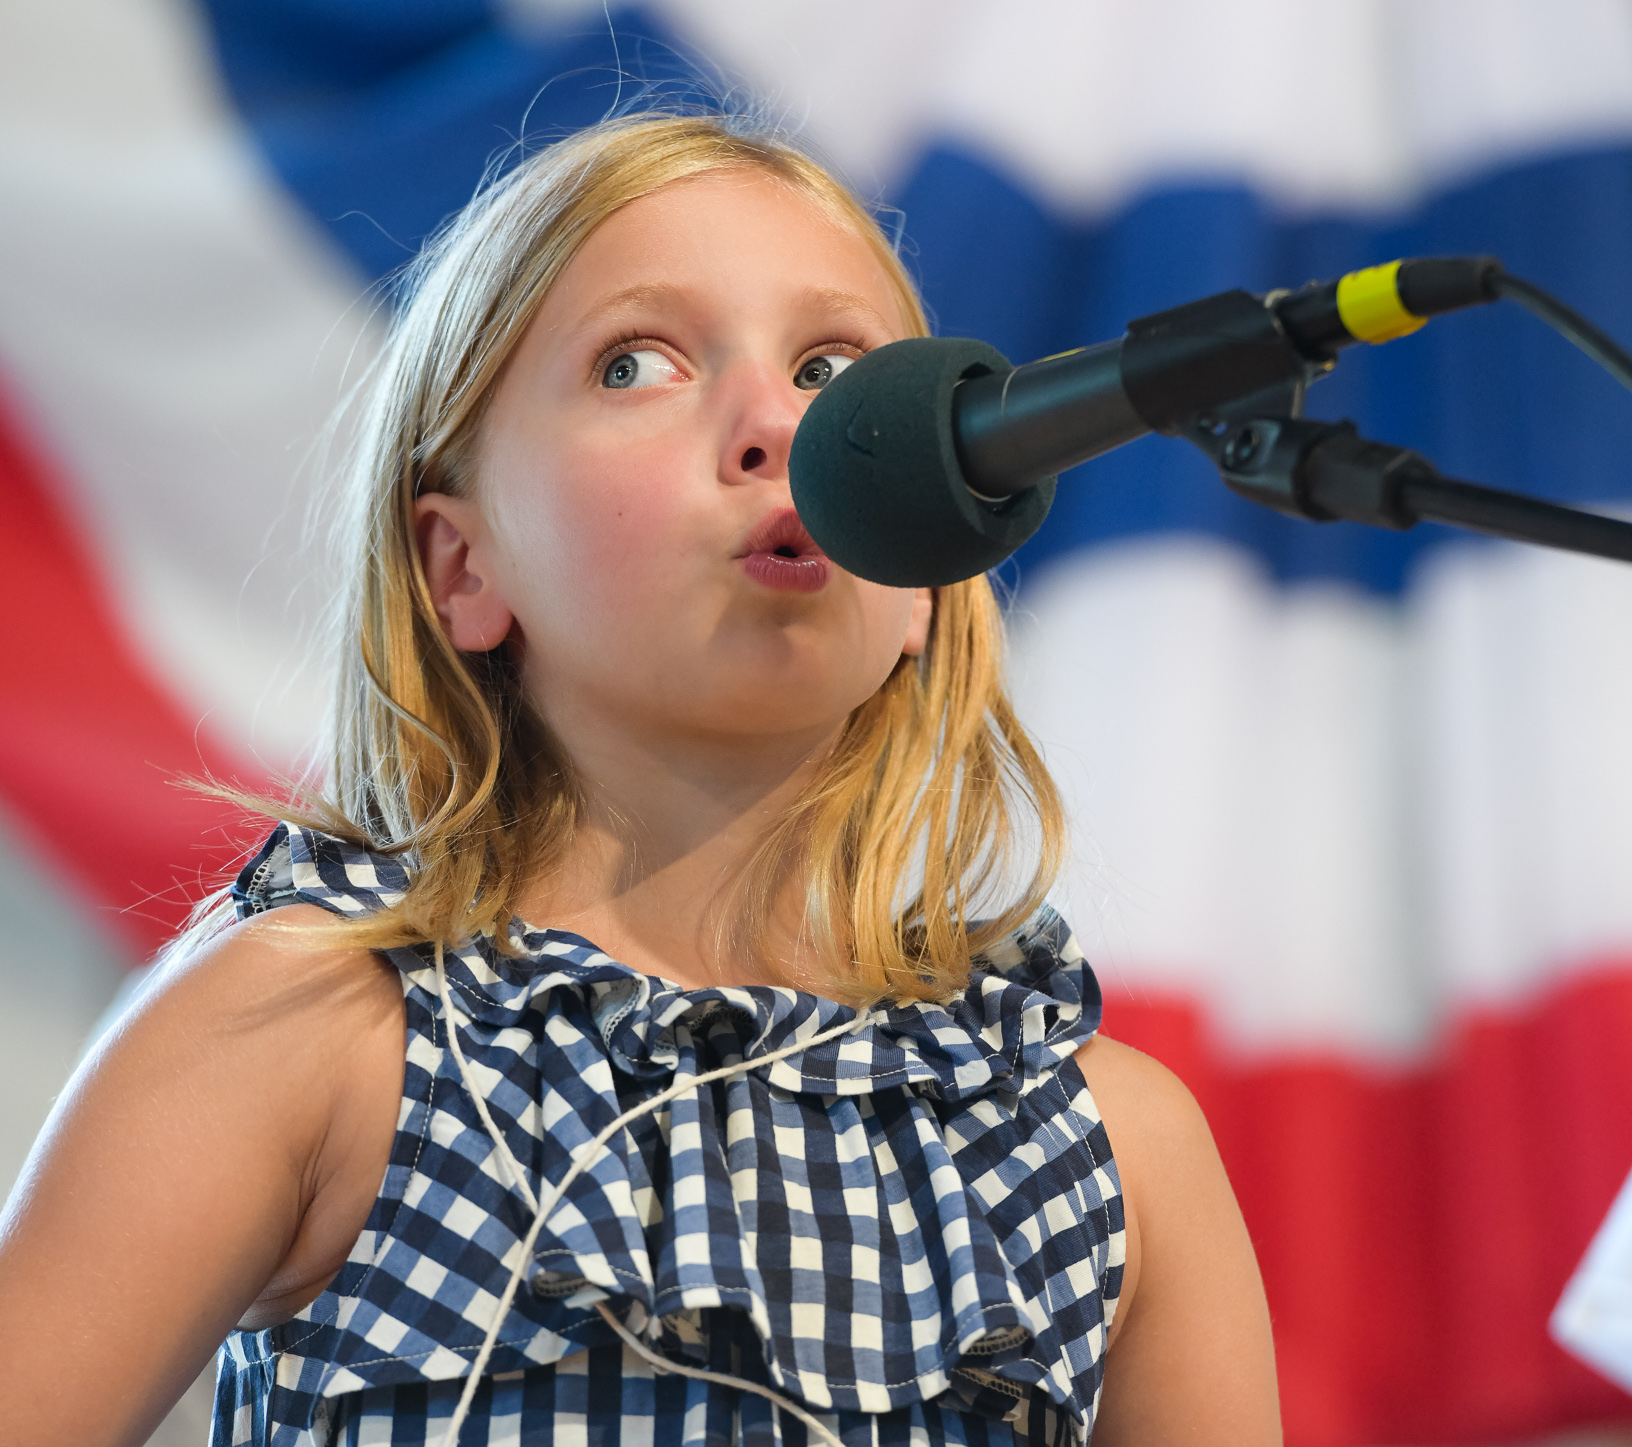 Aspen Fenton competes in the Iowa State Fair whistling contest at Pioneer Hall. Photo credit: Joseph L. Murphy/Iowa Soybean Association